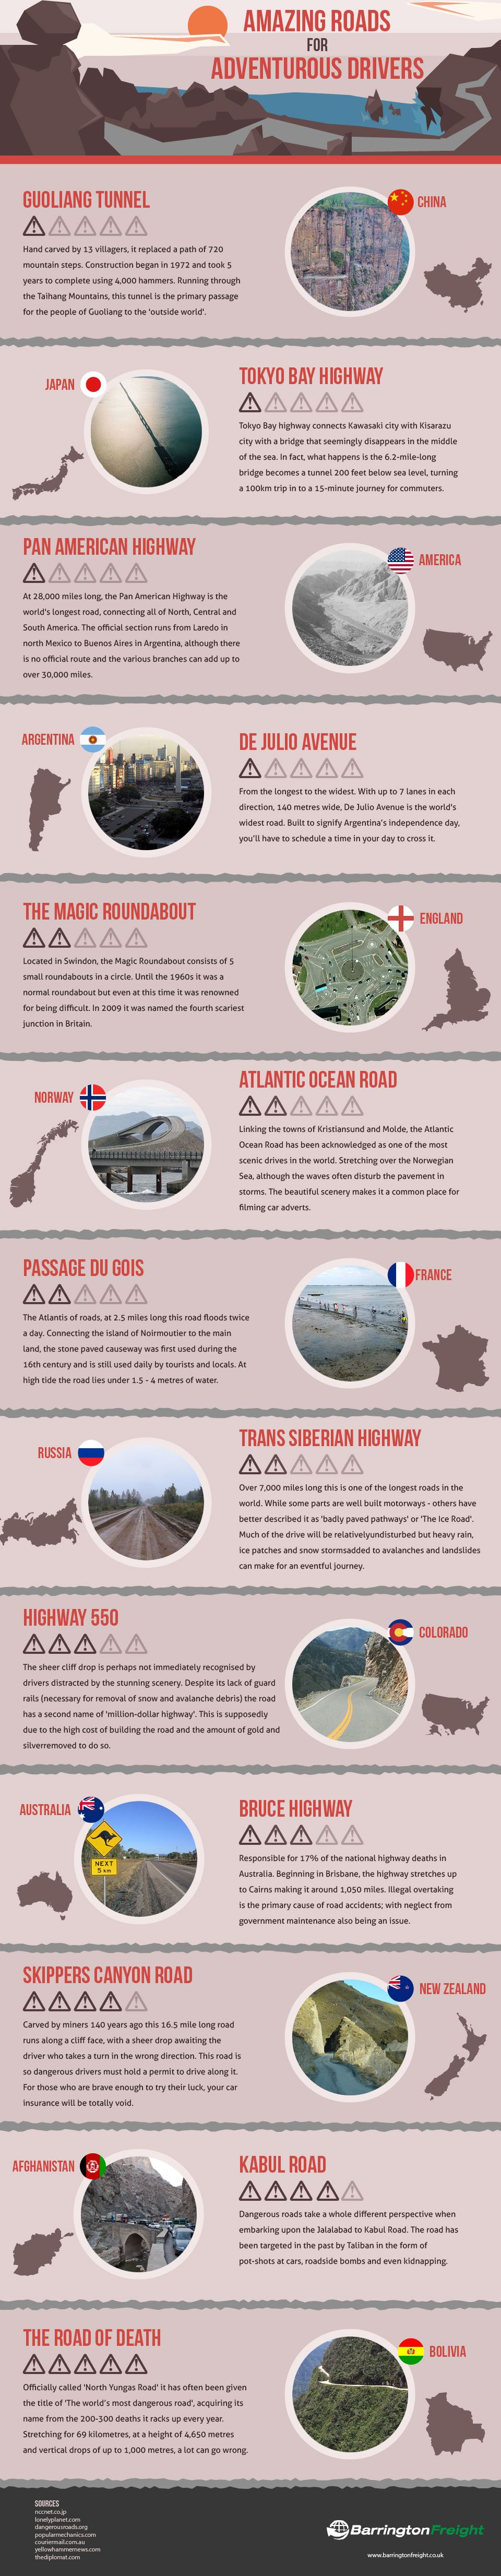 Amazing Roads For Adventurous Drivers #Infographic